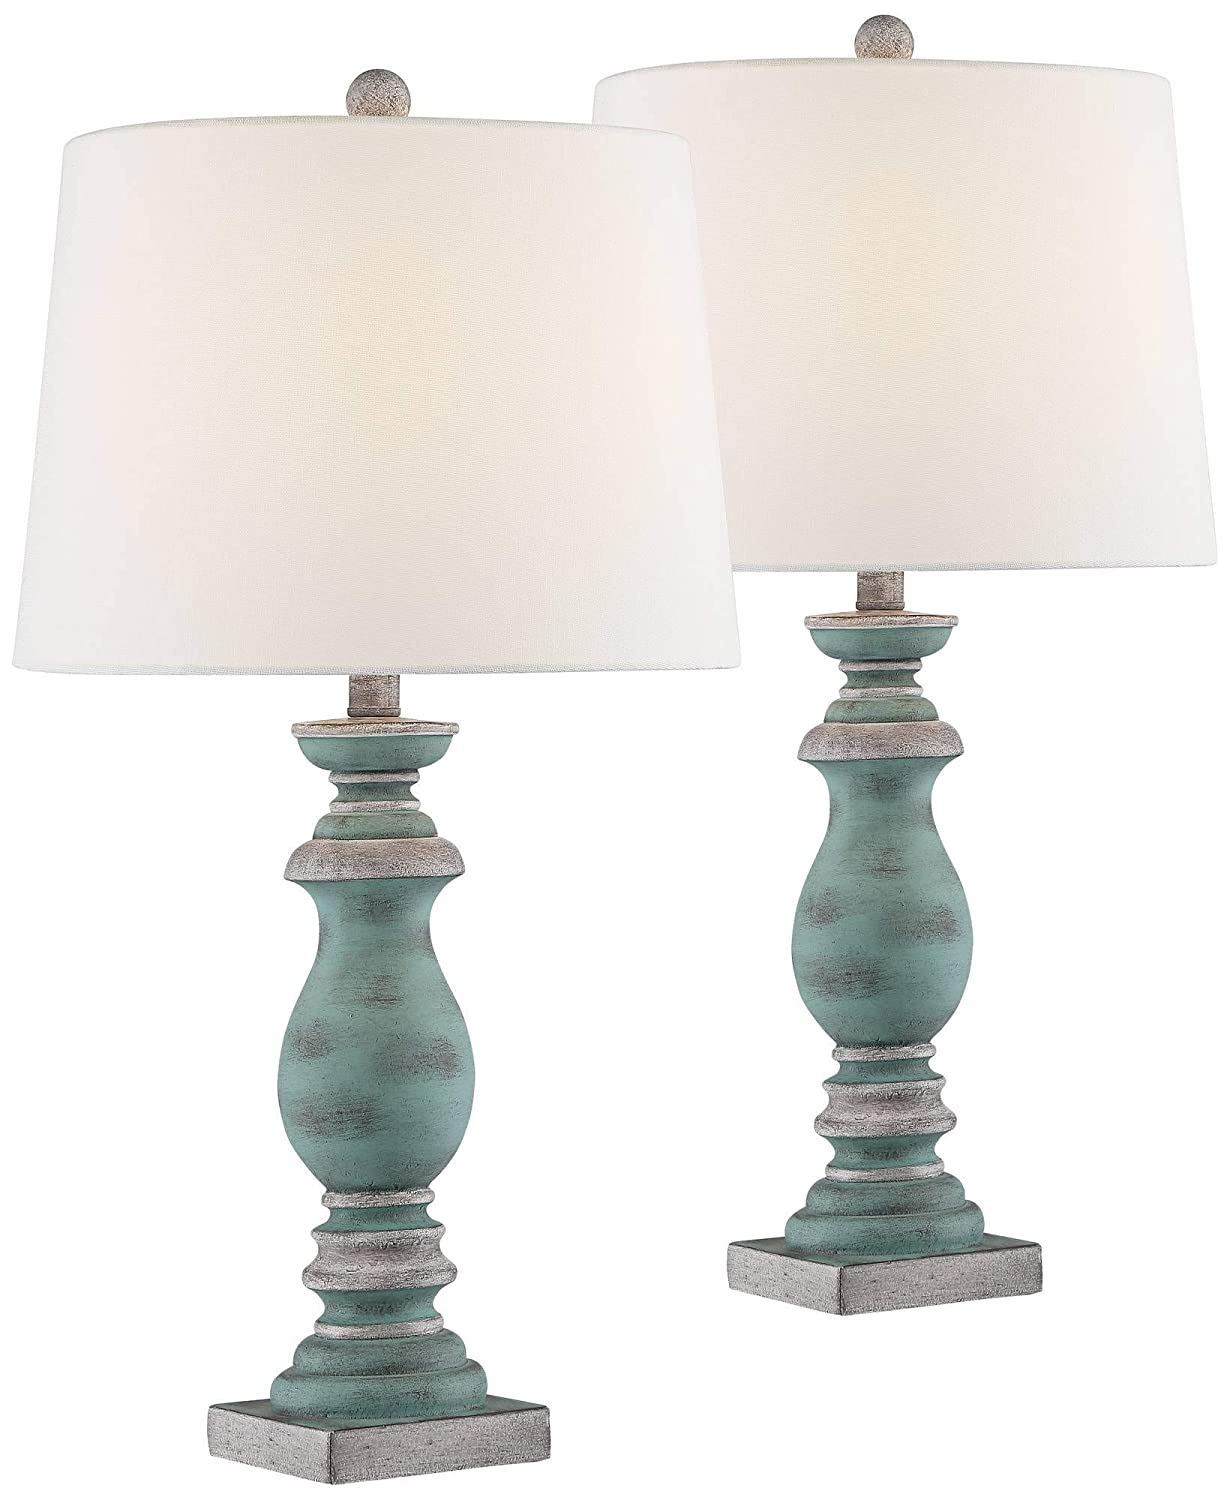 Patsy Country Cottage Table Lamps Set of 2 Blue Gray Washed Tapered Fabric Drum Shade for Living Room Bedroom Bedside Nightstand Office Family - Regency Hill